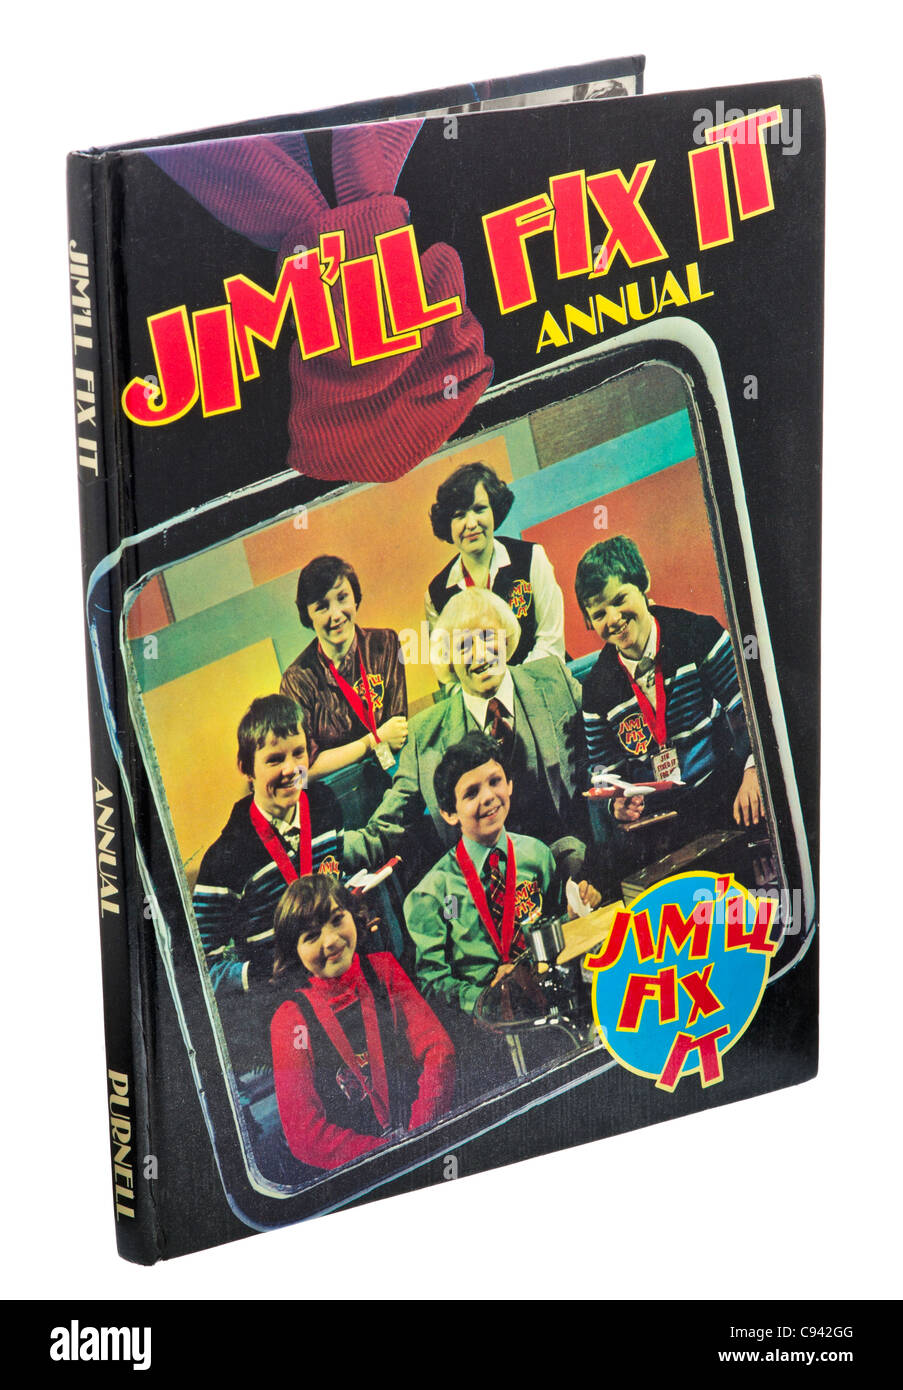 Jimmy Savile - Jim'll Fix It Annual from 1980. - Stock Image